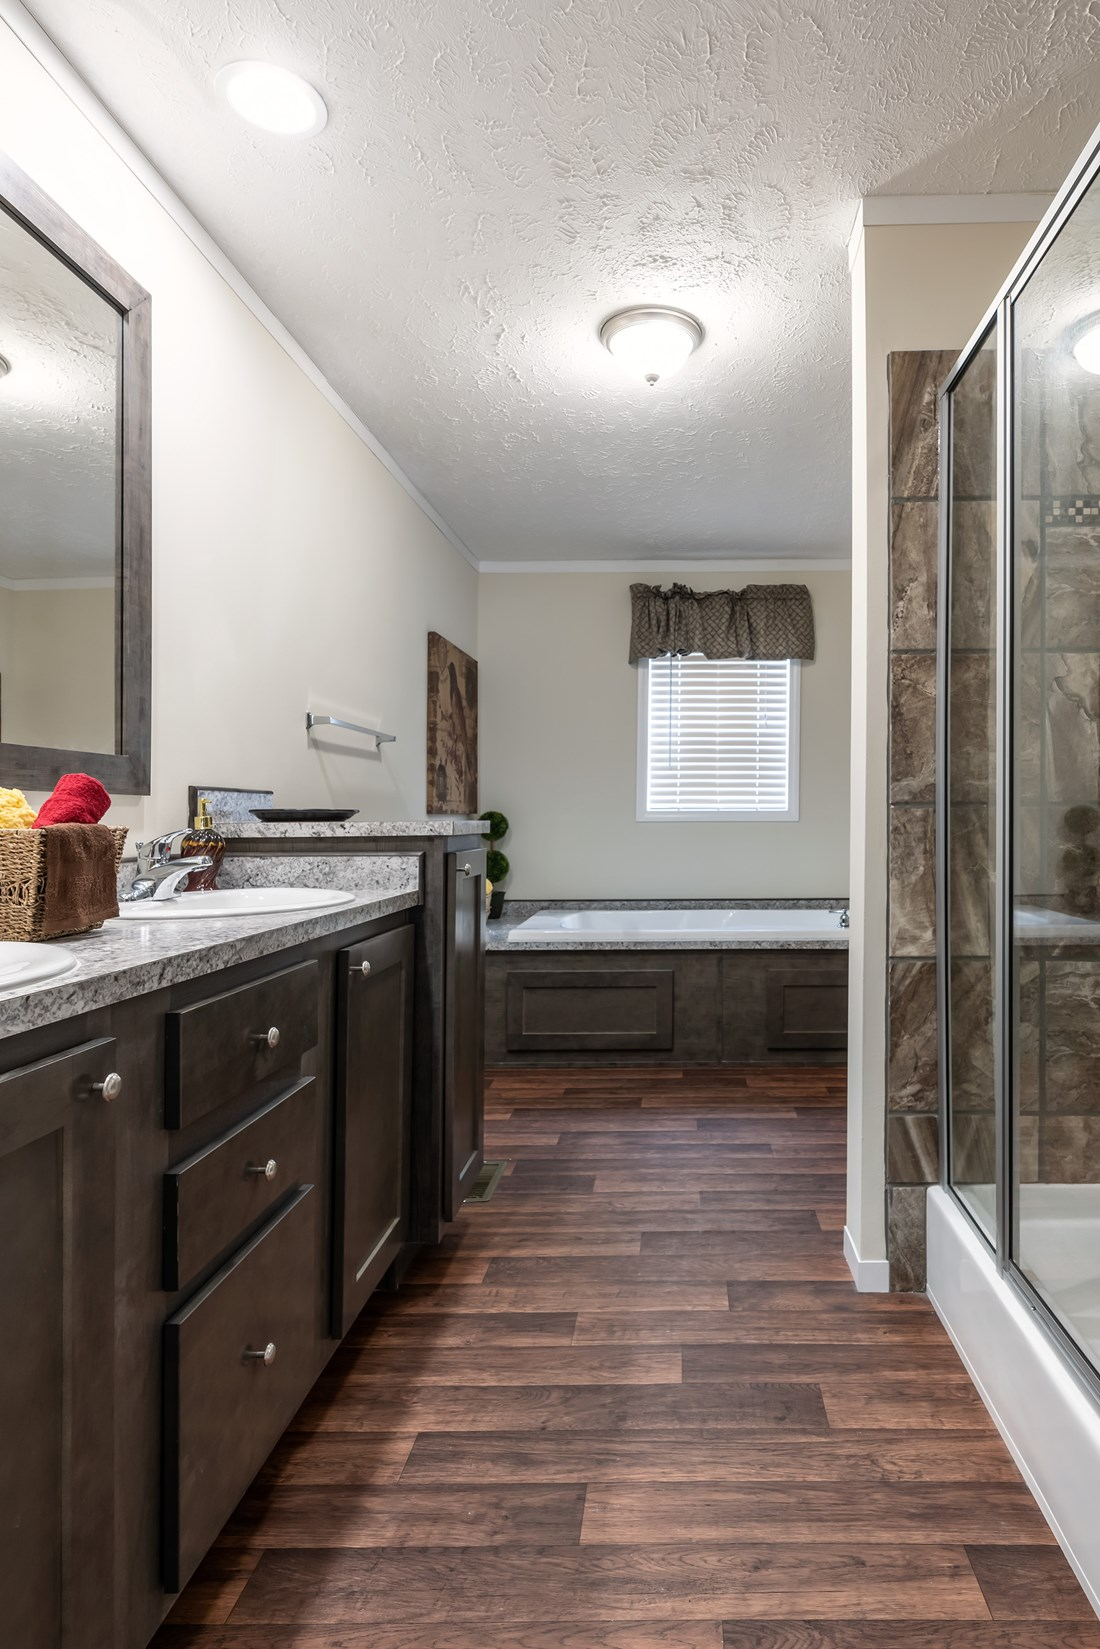 The WINCHESTER FLEX Master Bathroom. This Manufactured Mobile Home features 4 bedrooms and 2 baths.